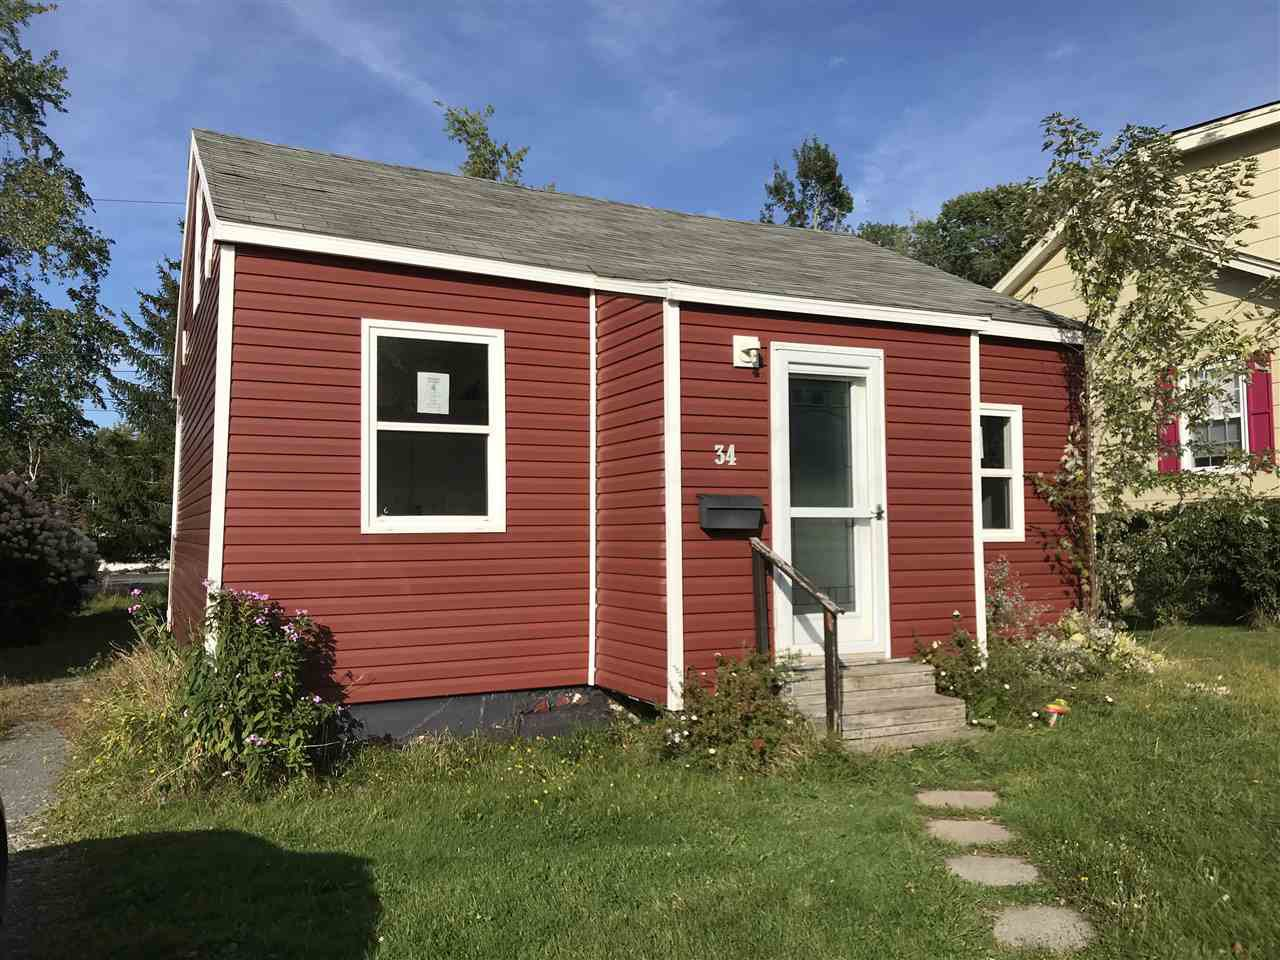 Main Photo: 34 Dover Avenue in New Glasgow: 106-New Glasgow, Stellarton Residential for sale (Northern Region)  : MLS®# 201922925